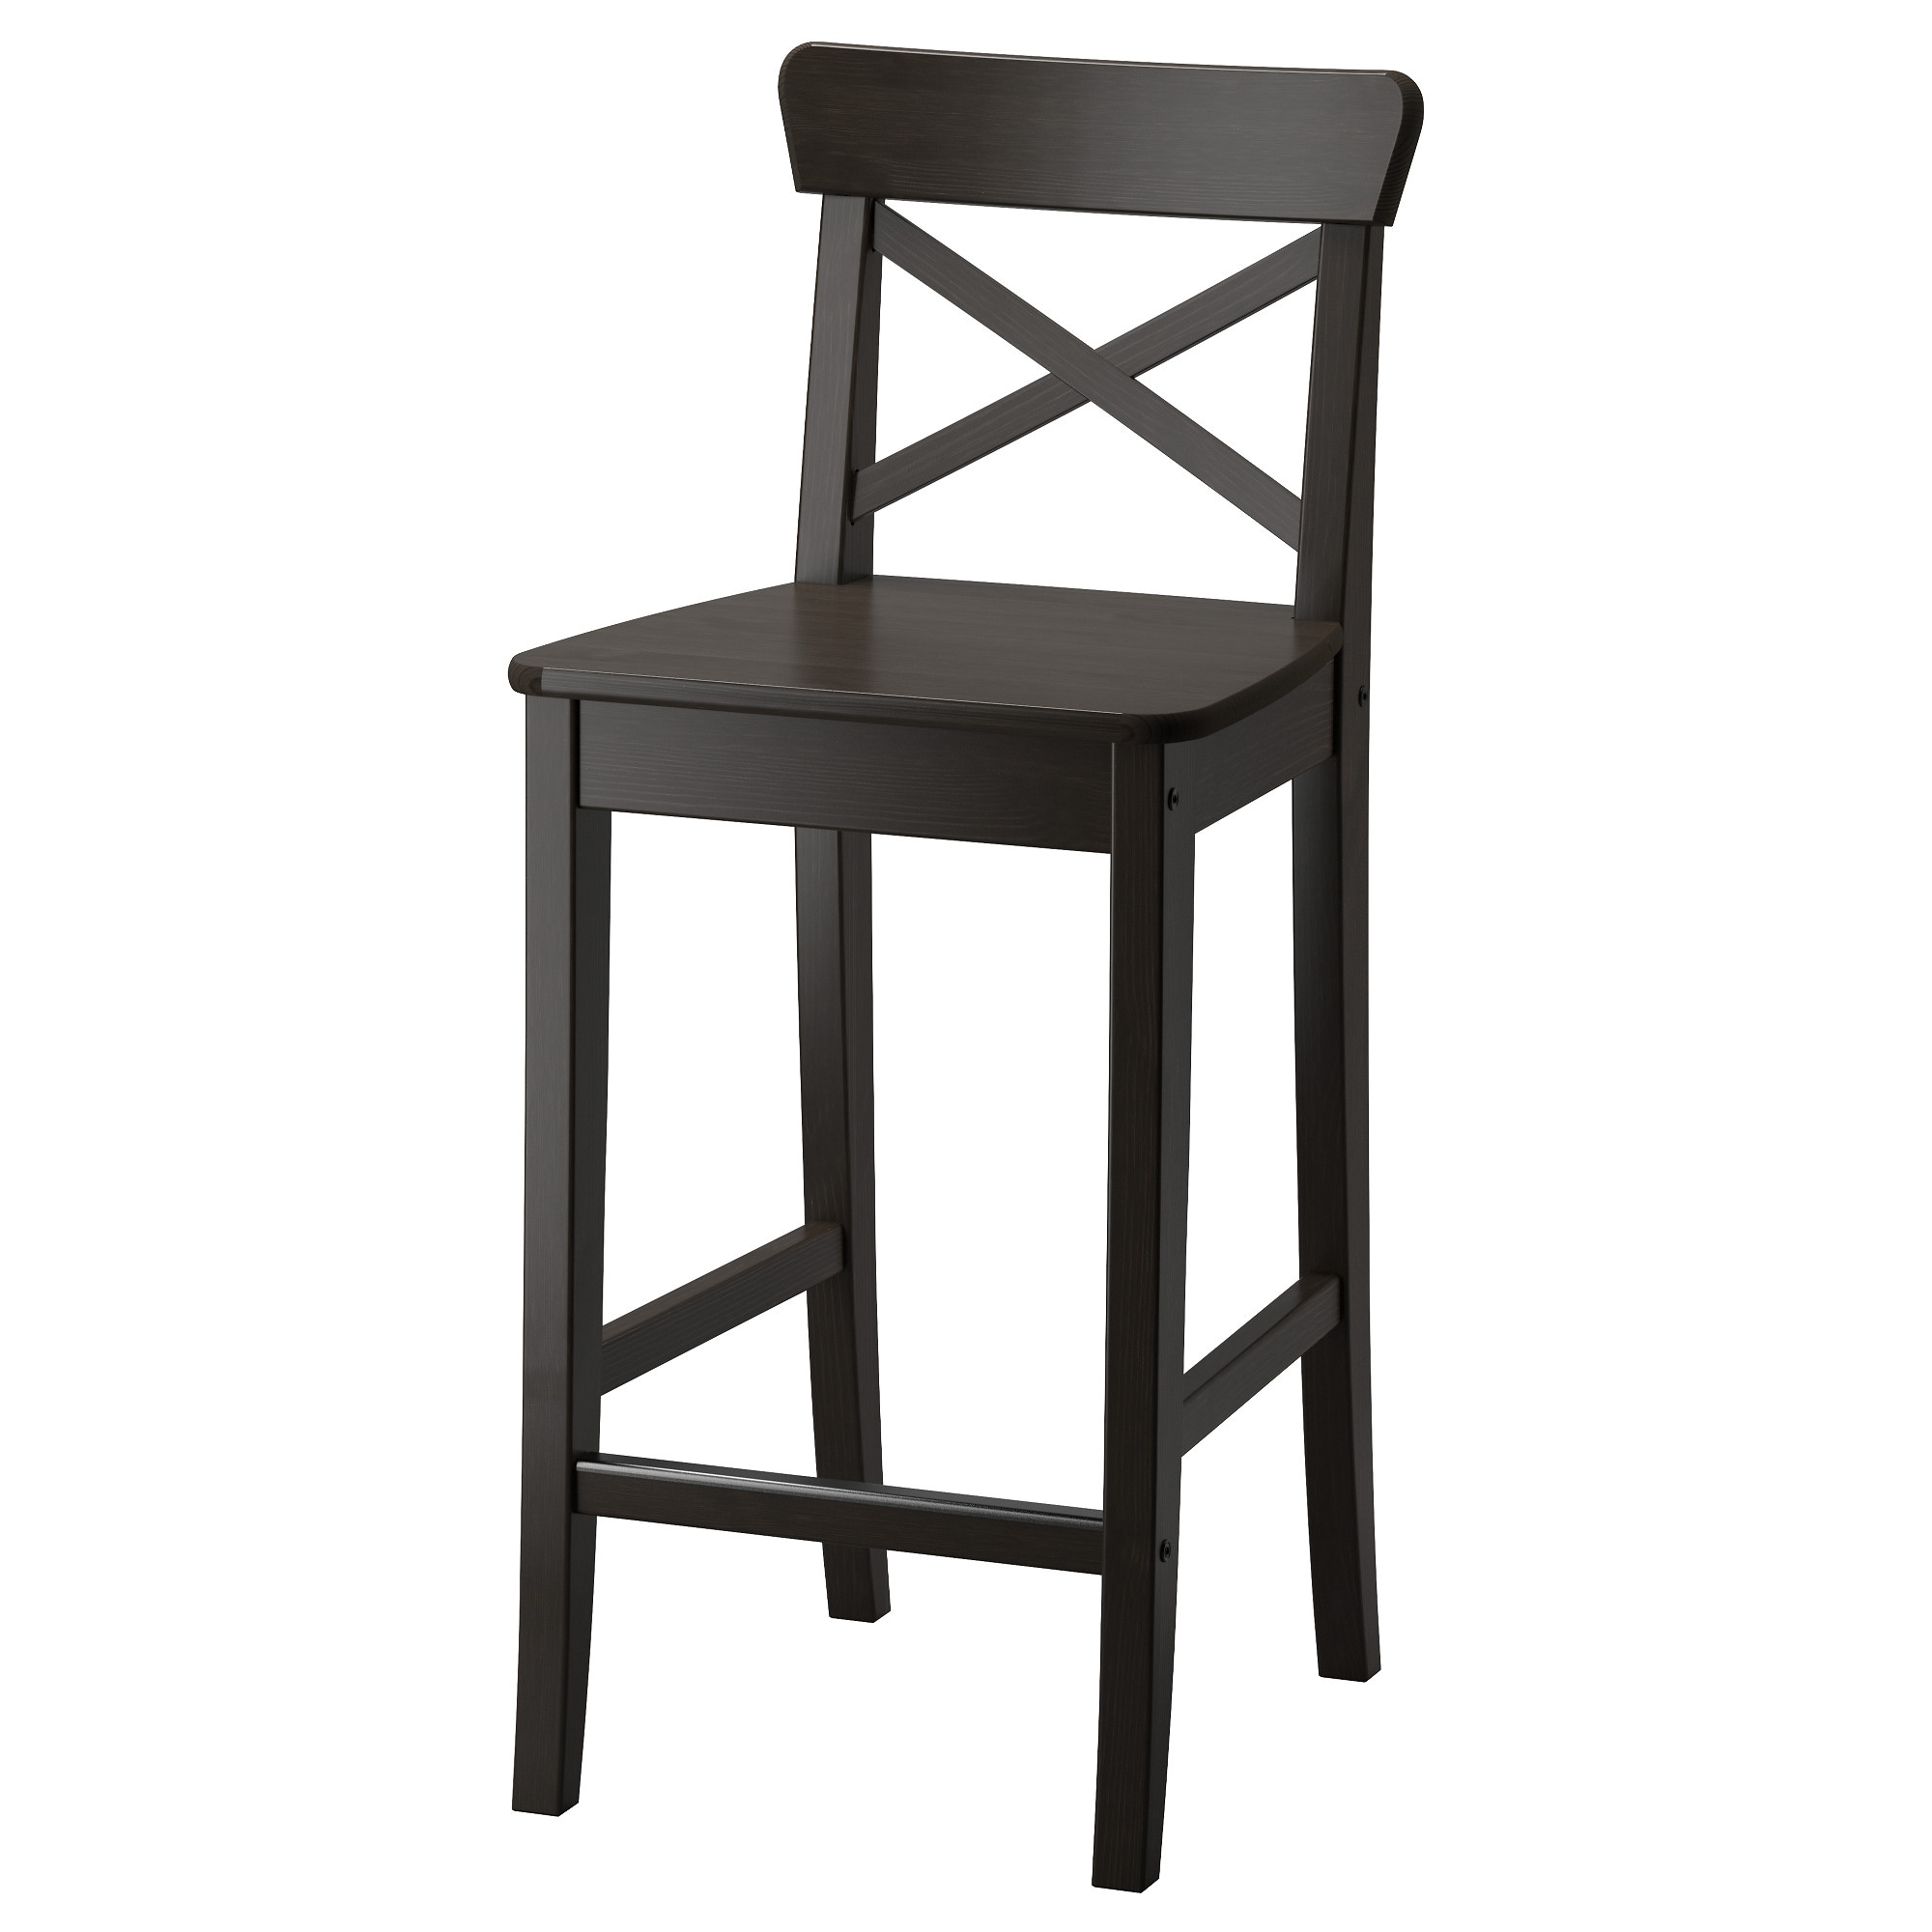 Superb INGOLF Bar Stool With Backrest   IKEA